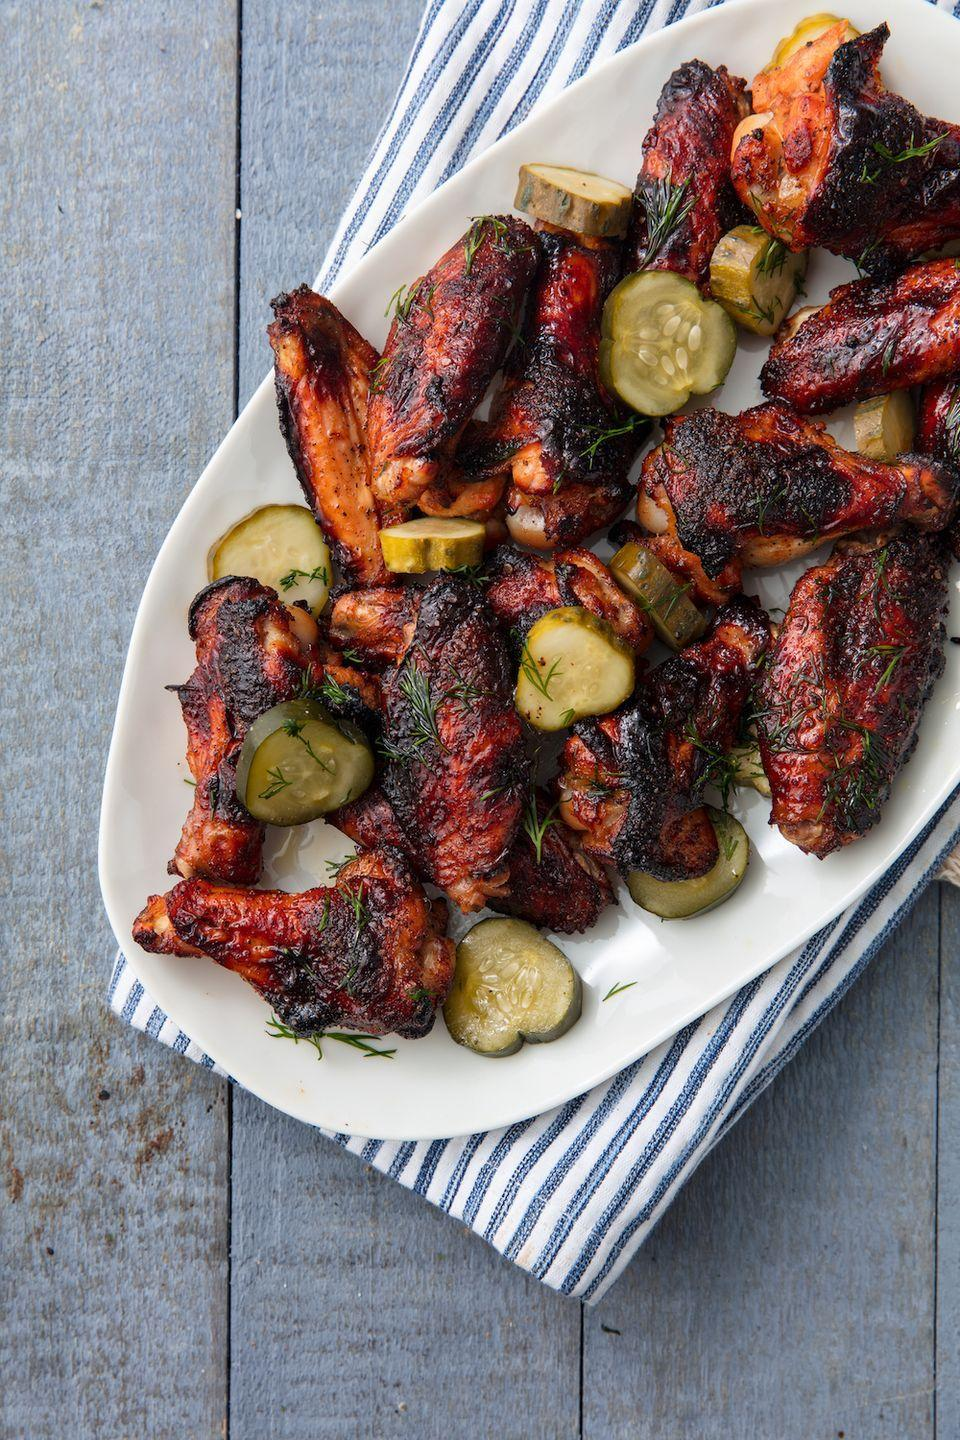 """<p>This just might be the best way to use pickle juice.</p><p>Get the recipe from <a href=""""https://www.redbookmag.com/cooking/recipe-ideas/recipes/a53574/pickleback-wings-recipe/"""" rel=""""nofollow noopener"""" target=""""_blank"""" data-ylk=""""slk:Delish"""" class=""""link rapid-noclick-resp"""">Delish</a>. </p>"""